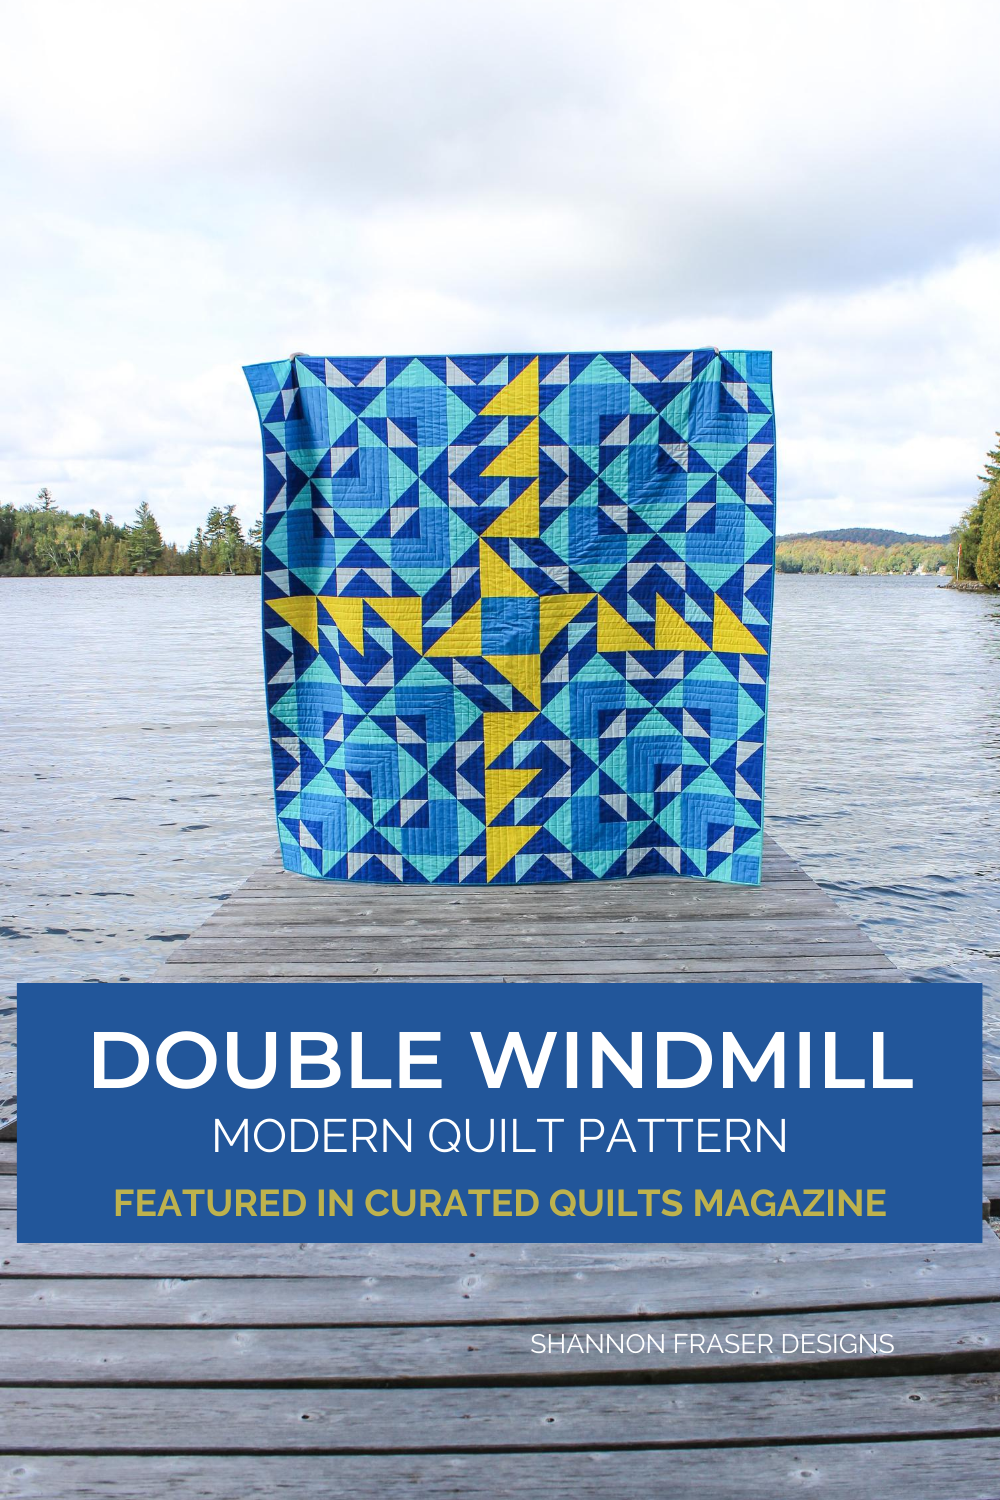 Blue and yellow Double Windmill Quilt on wooden dock in front of a lake | Shannon Fraser Designs #modernquiltpatterns